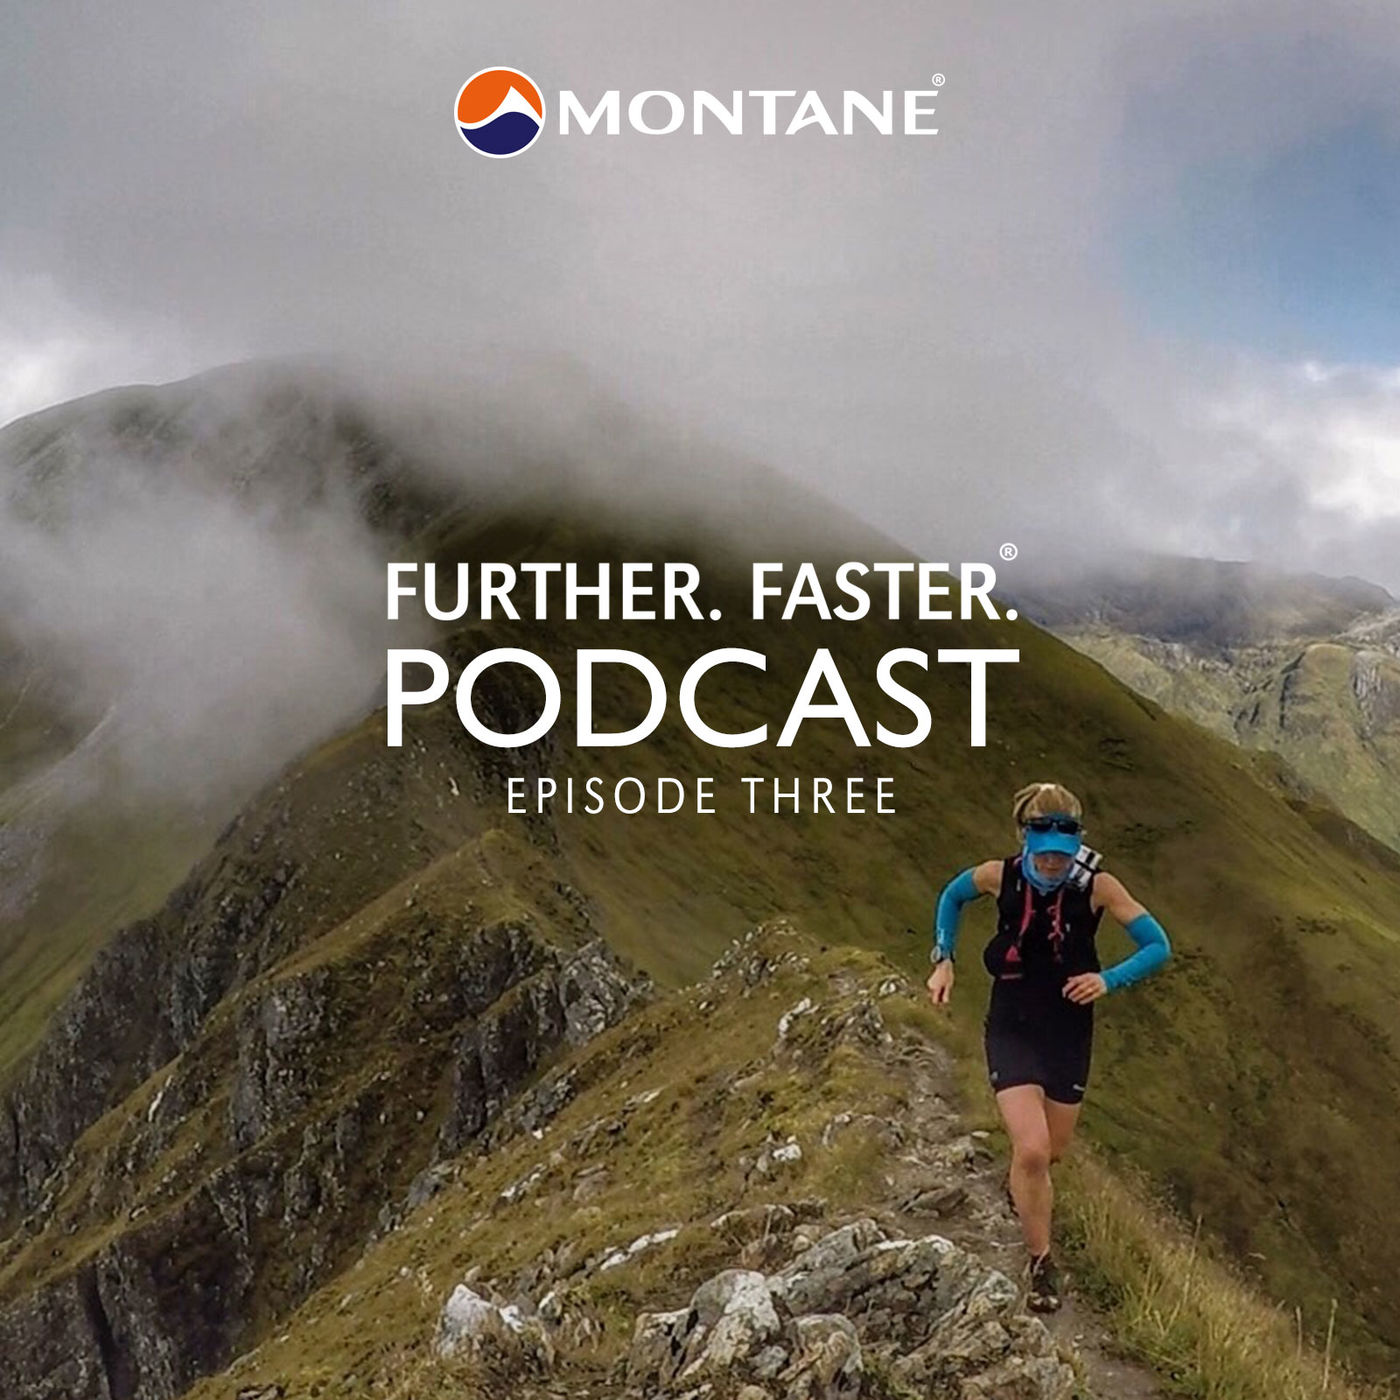 Further. Faster. Podcast Ep3 (Ultra Runner Debbie Martin-Consani)